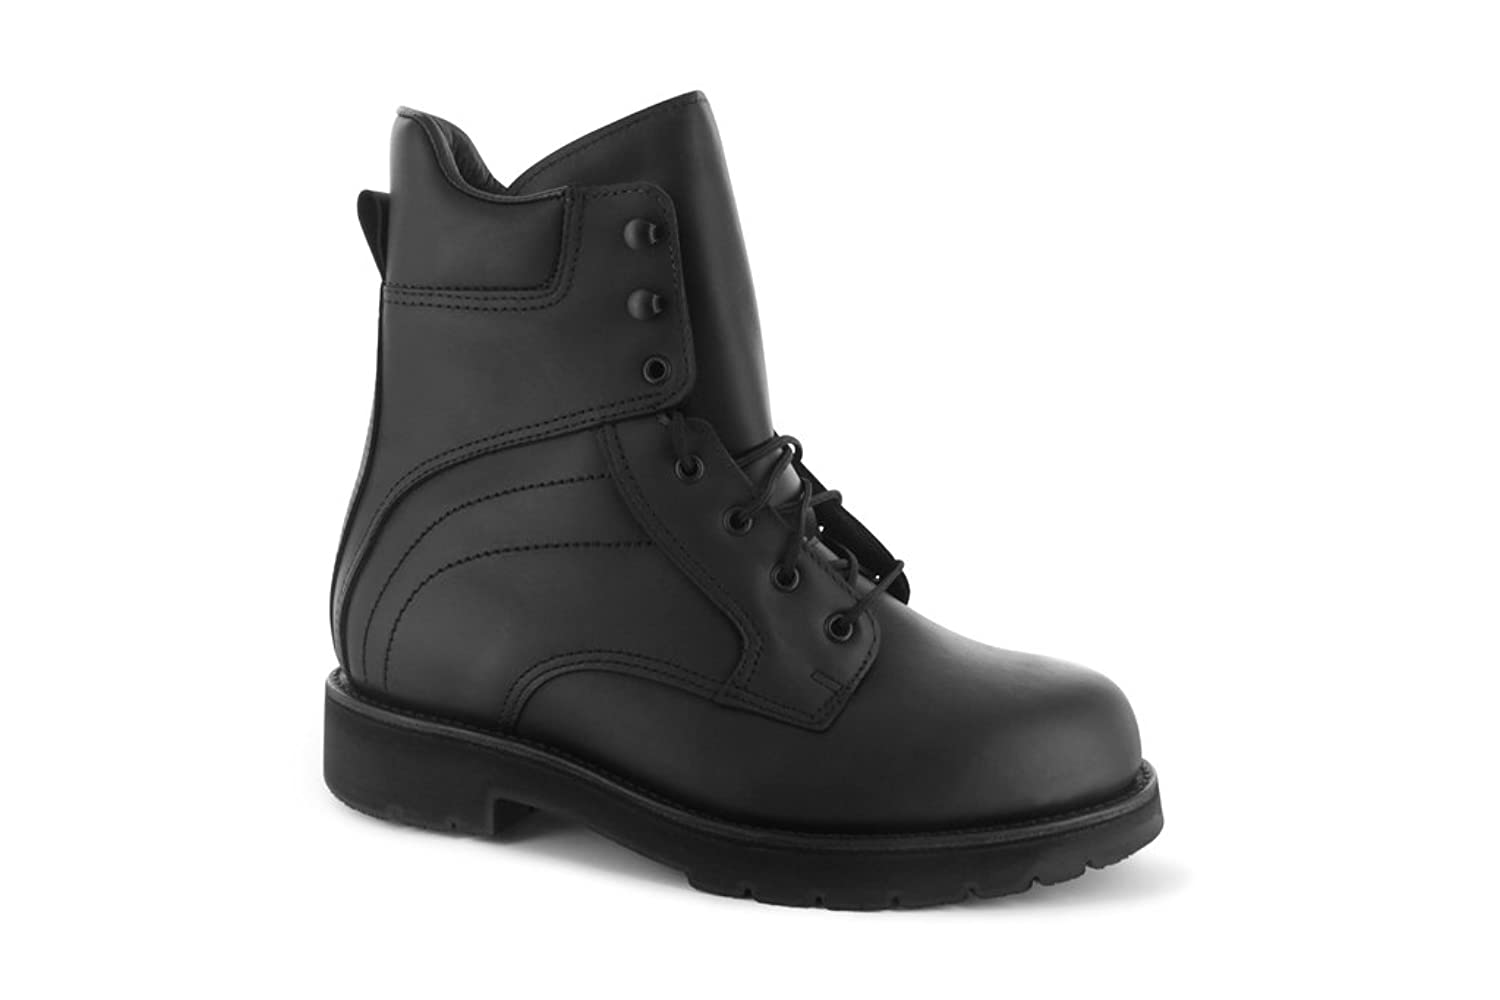 THE ABRAM BOOT COMPANY メンズ B0758B5SY2ブラック 8.5 3E US